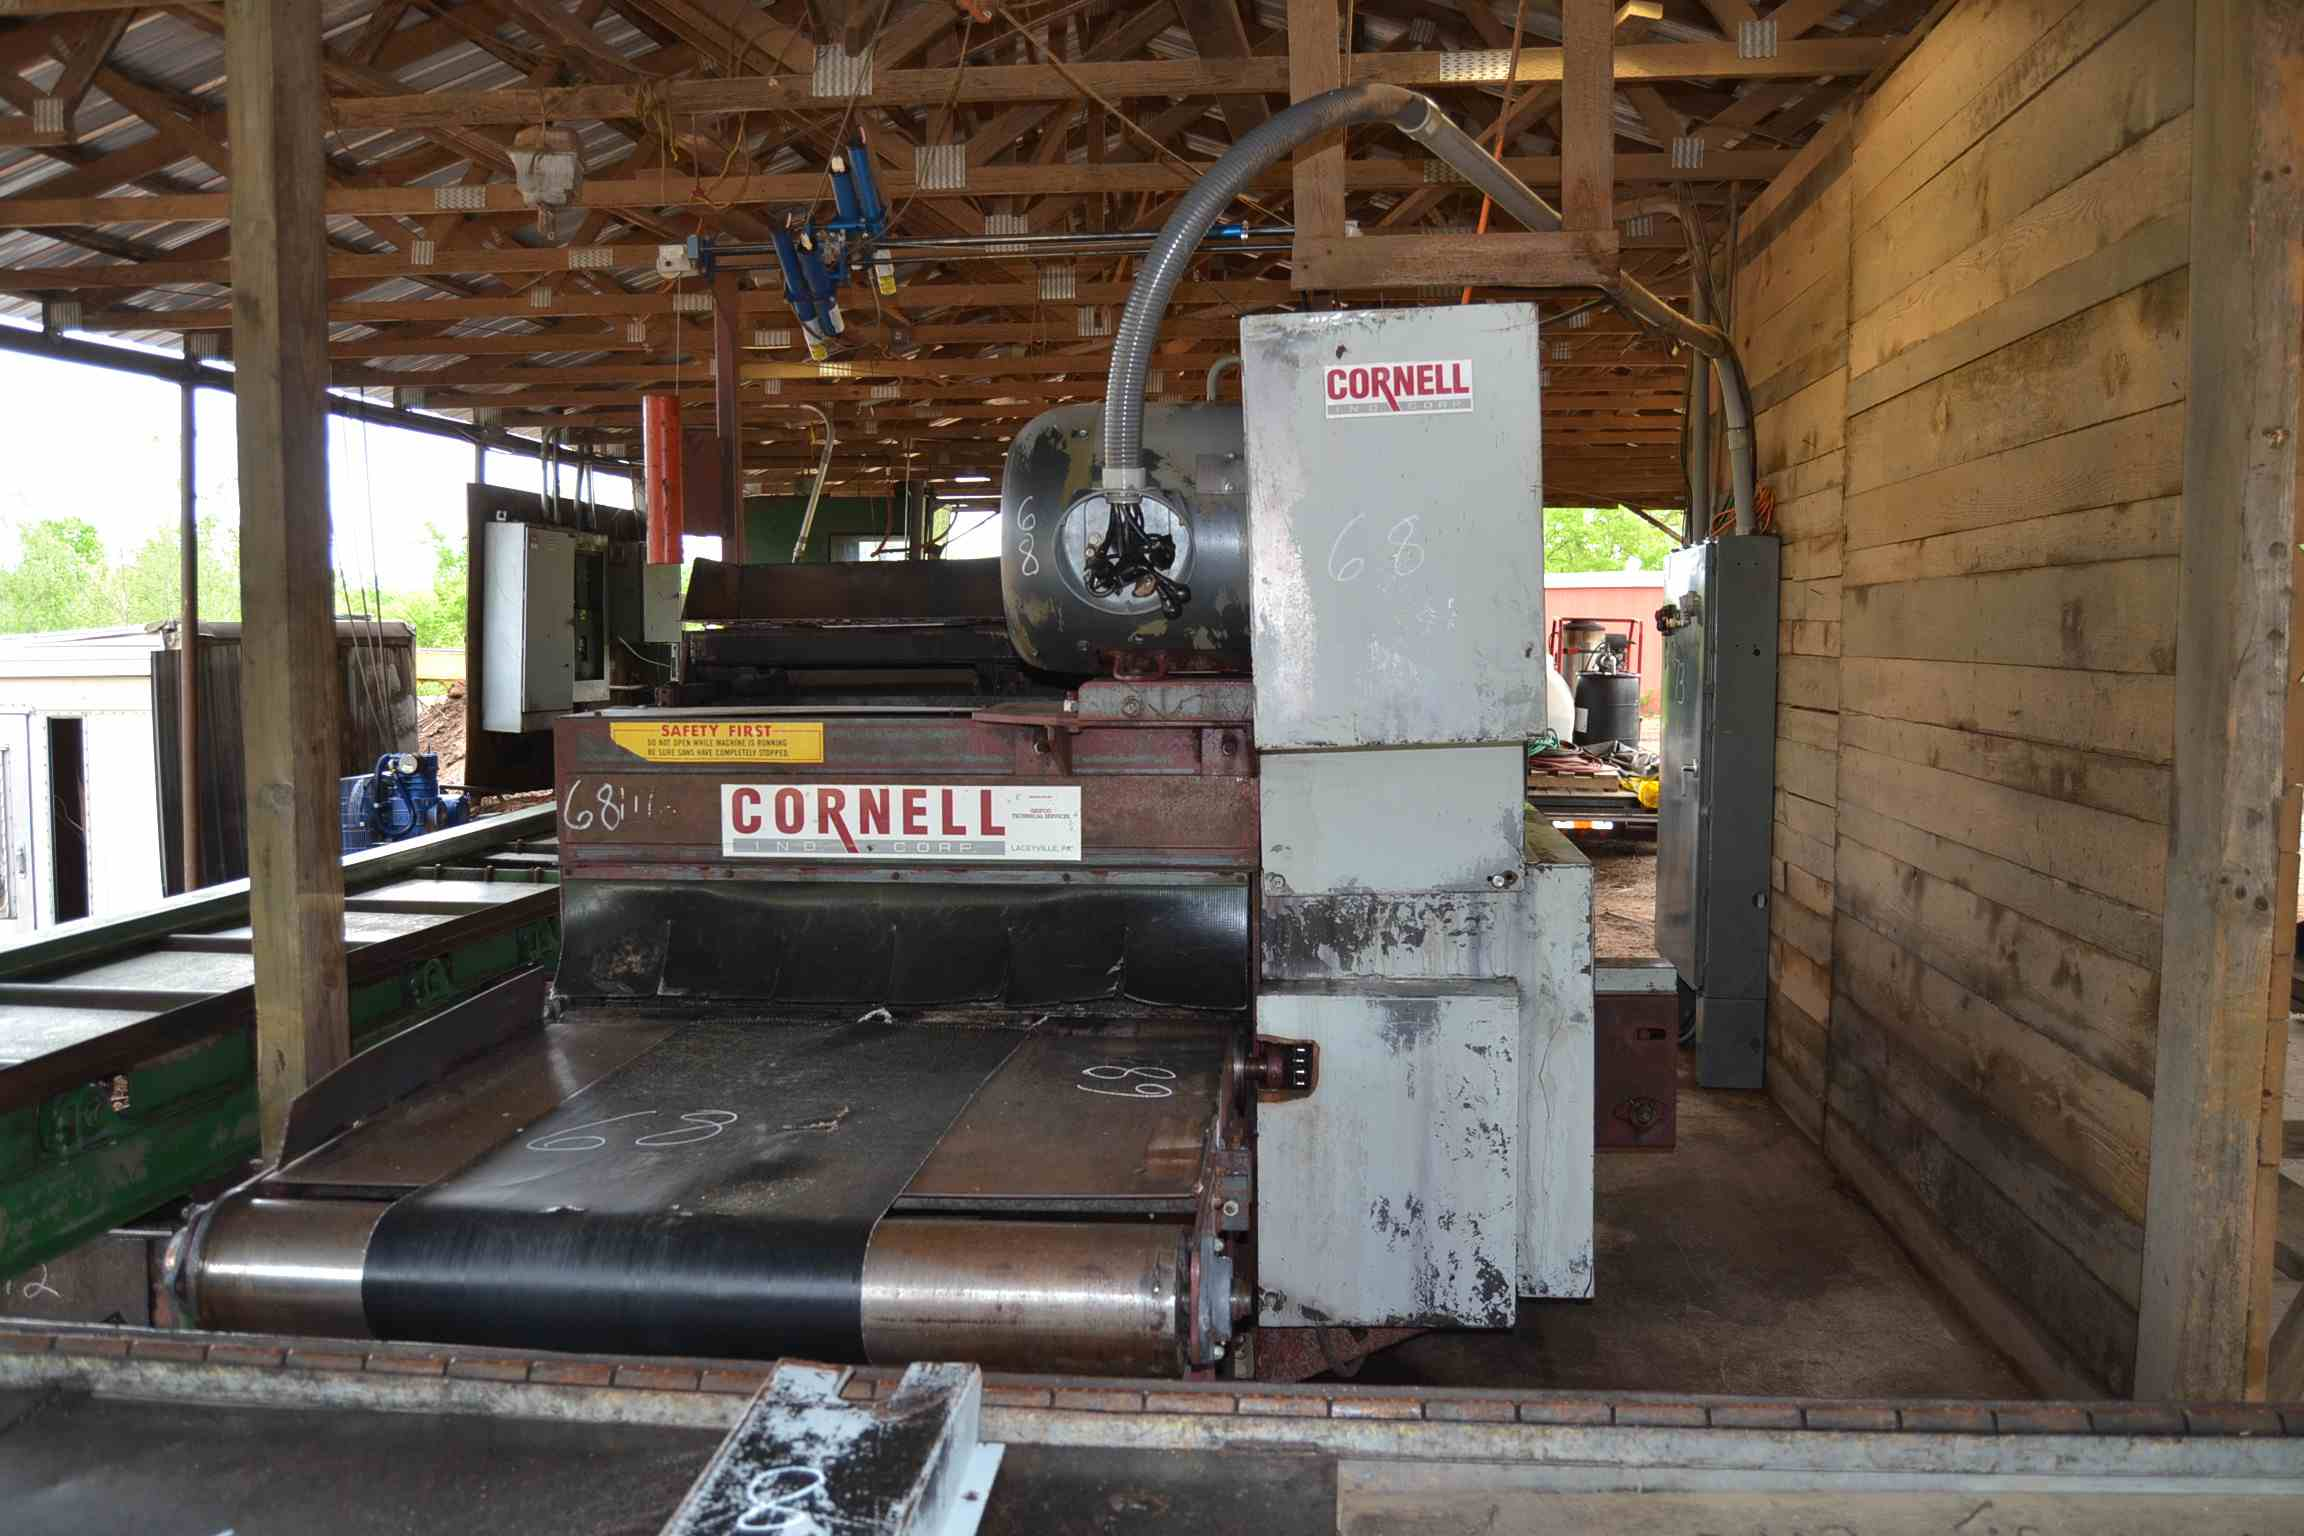 Lot 68 - CORNELL 648 GANG EDGER W/STRAIGHT EDGE; W/CROWDER; W/4' OUTFEED; W/75 HP MOTOR; W/CONTROLS; S/N-